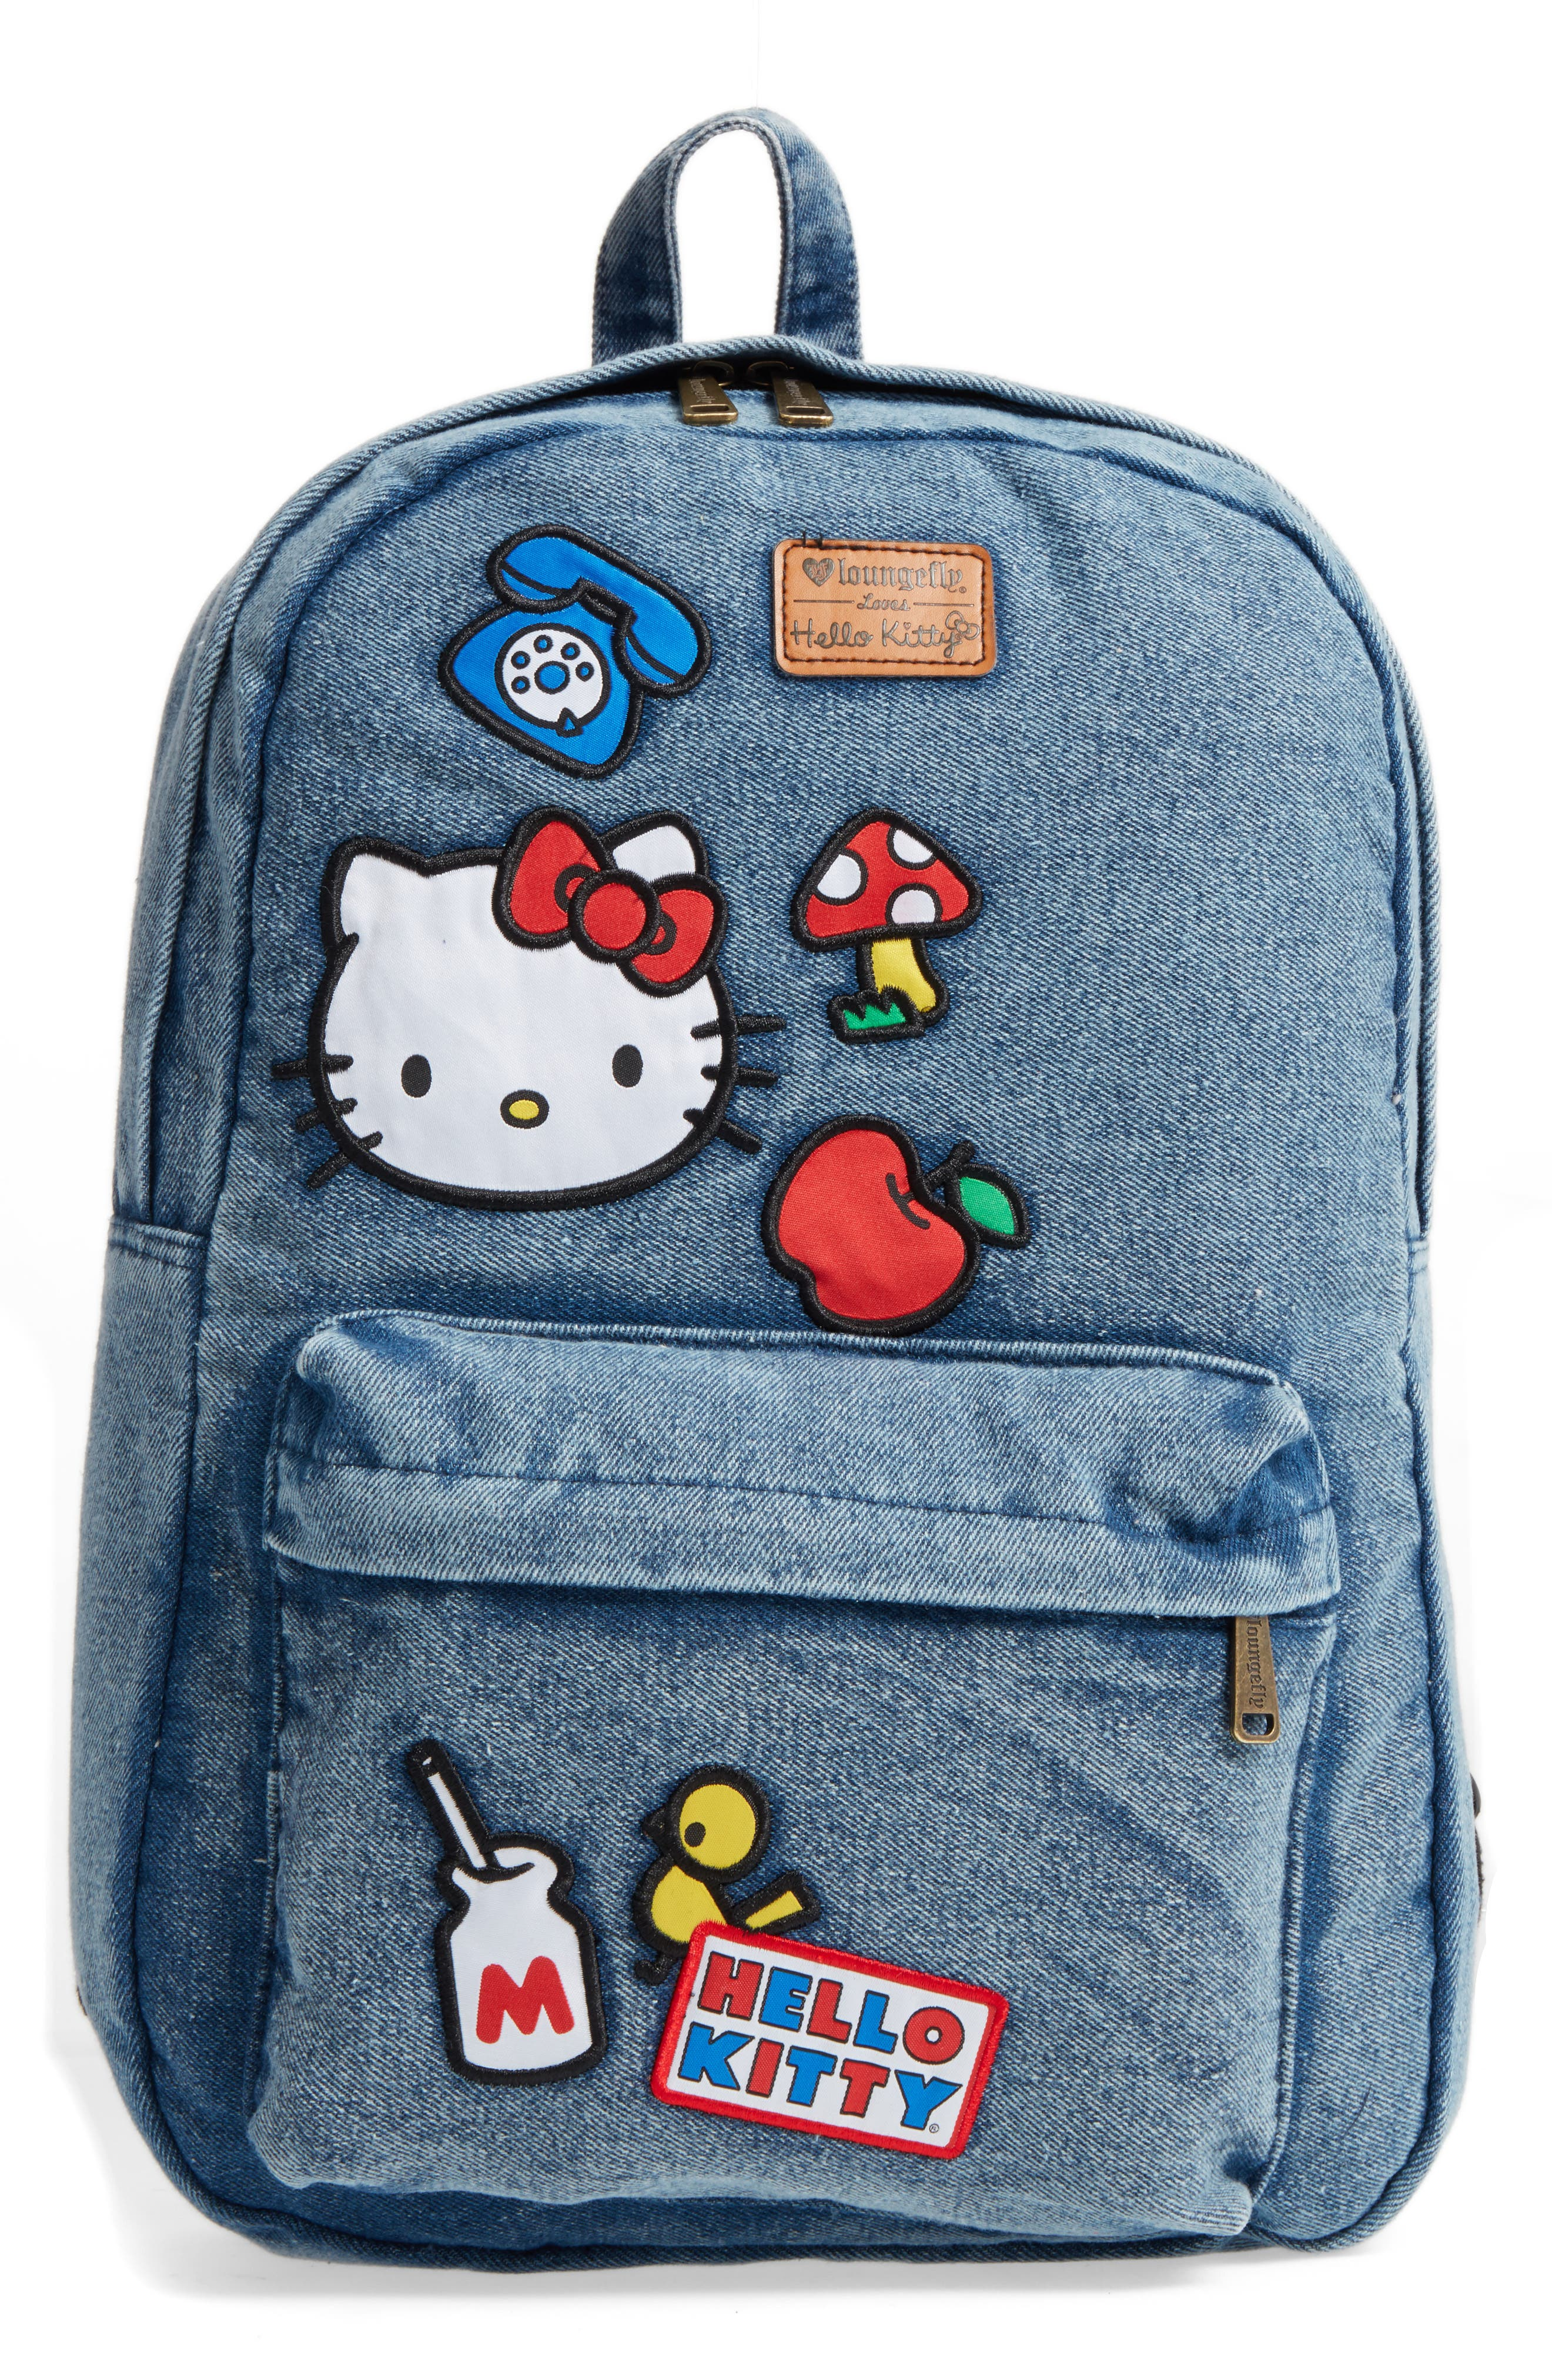 Main Image - Loungefly Hello Kitty® Patch Denim Backpack (Kids)